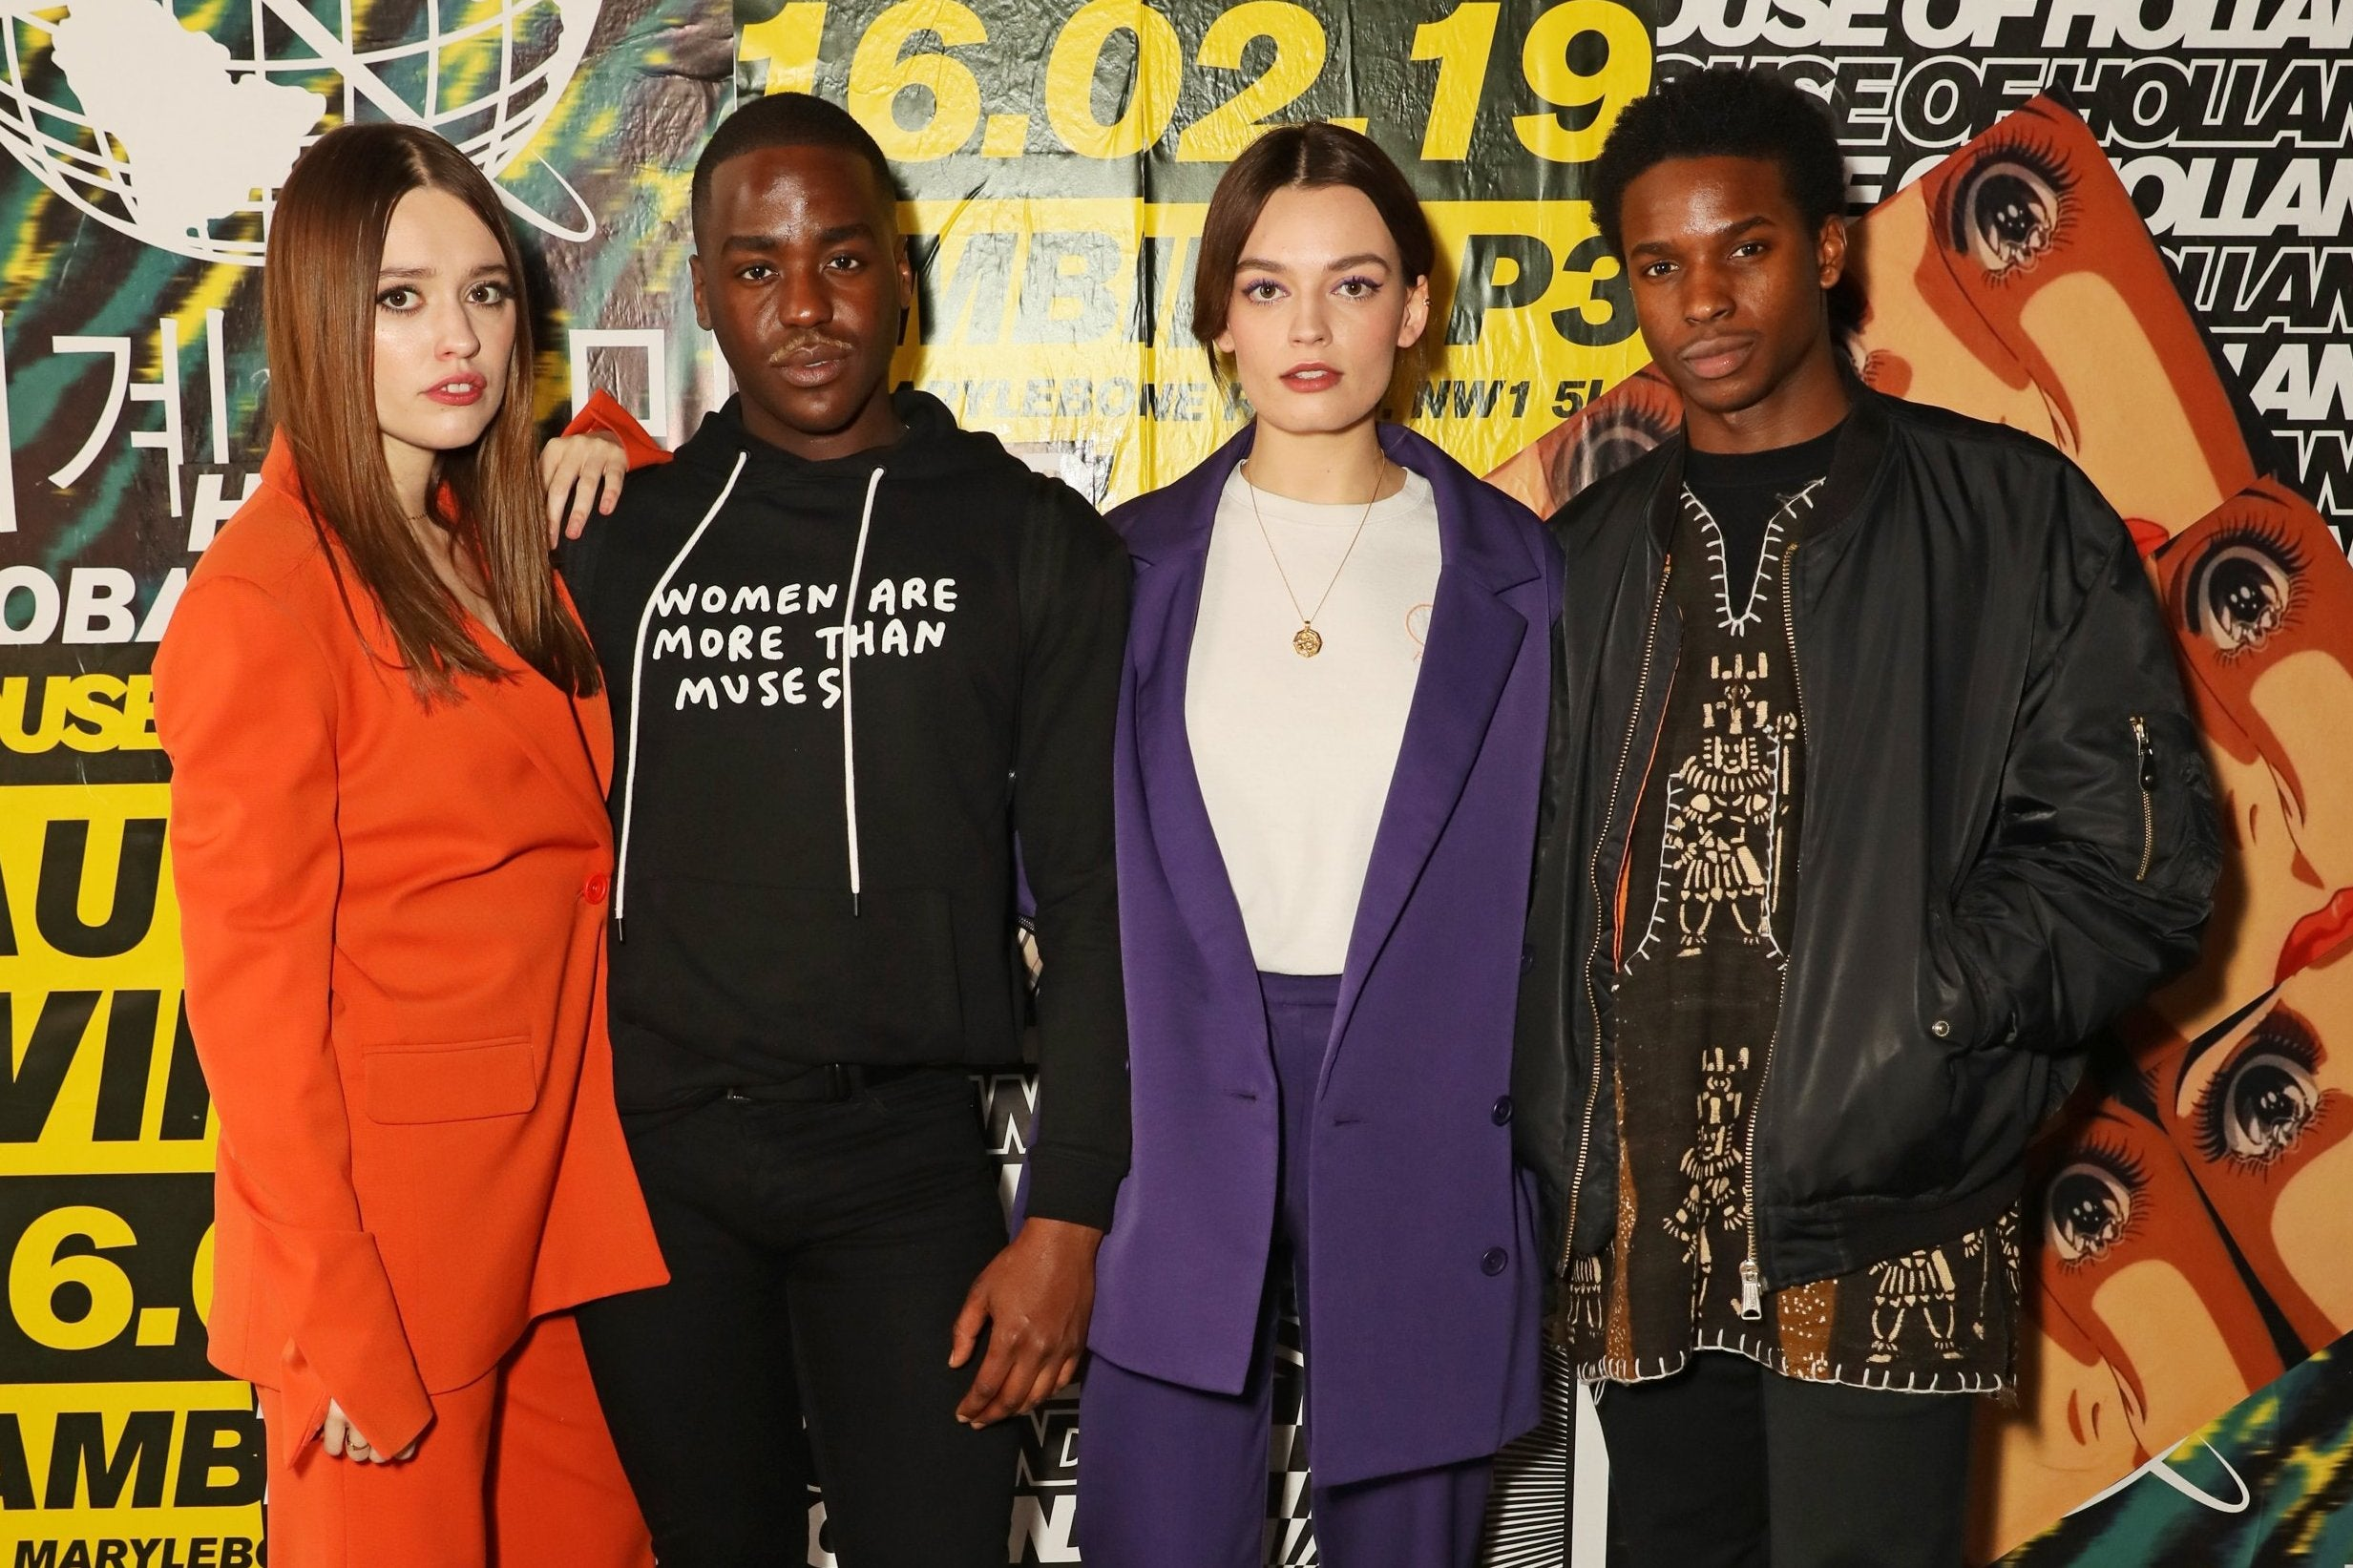 London Fashion Week: Celebrities on the front row at the AW19 runway shows